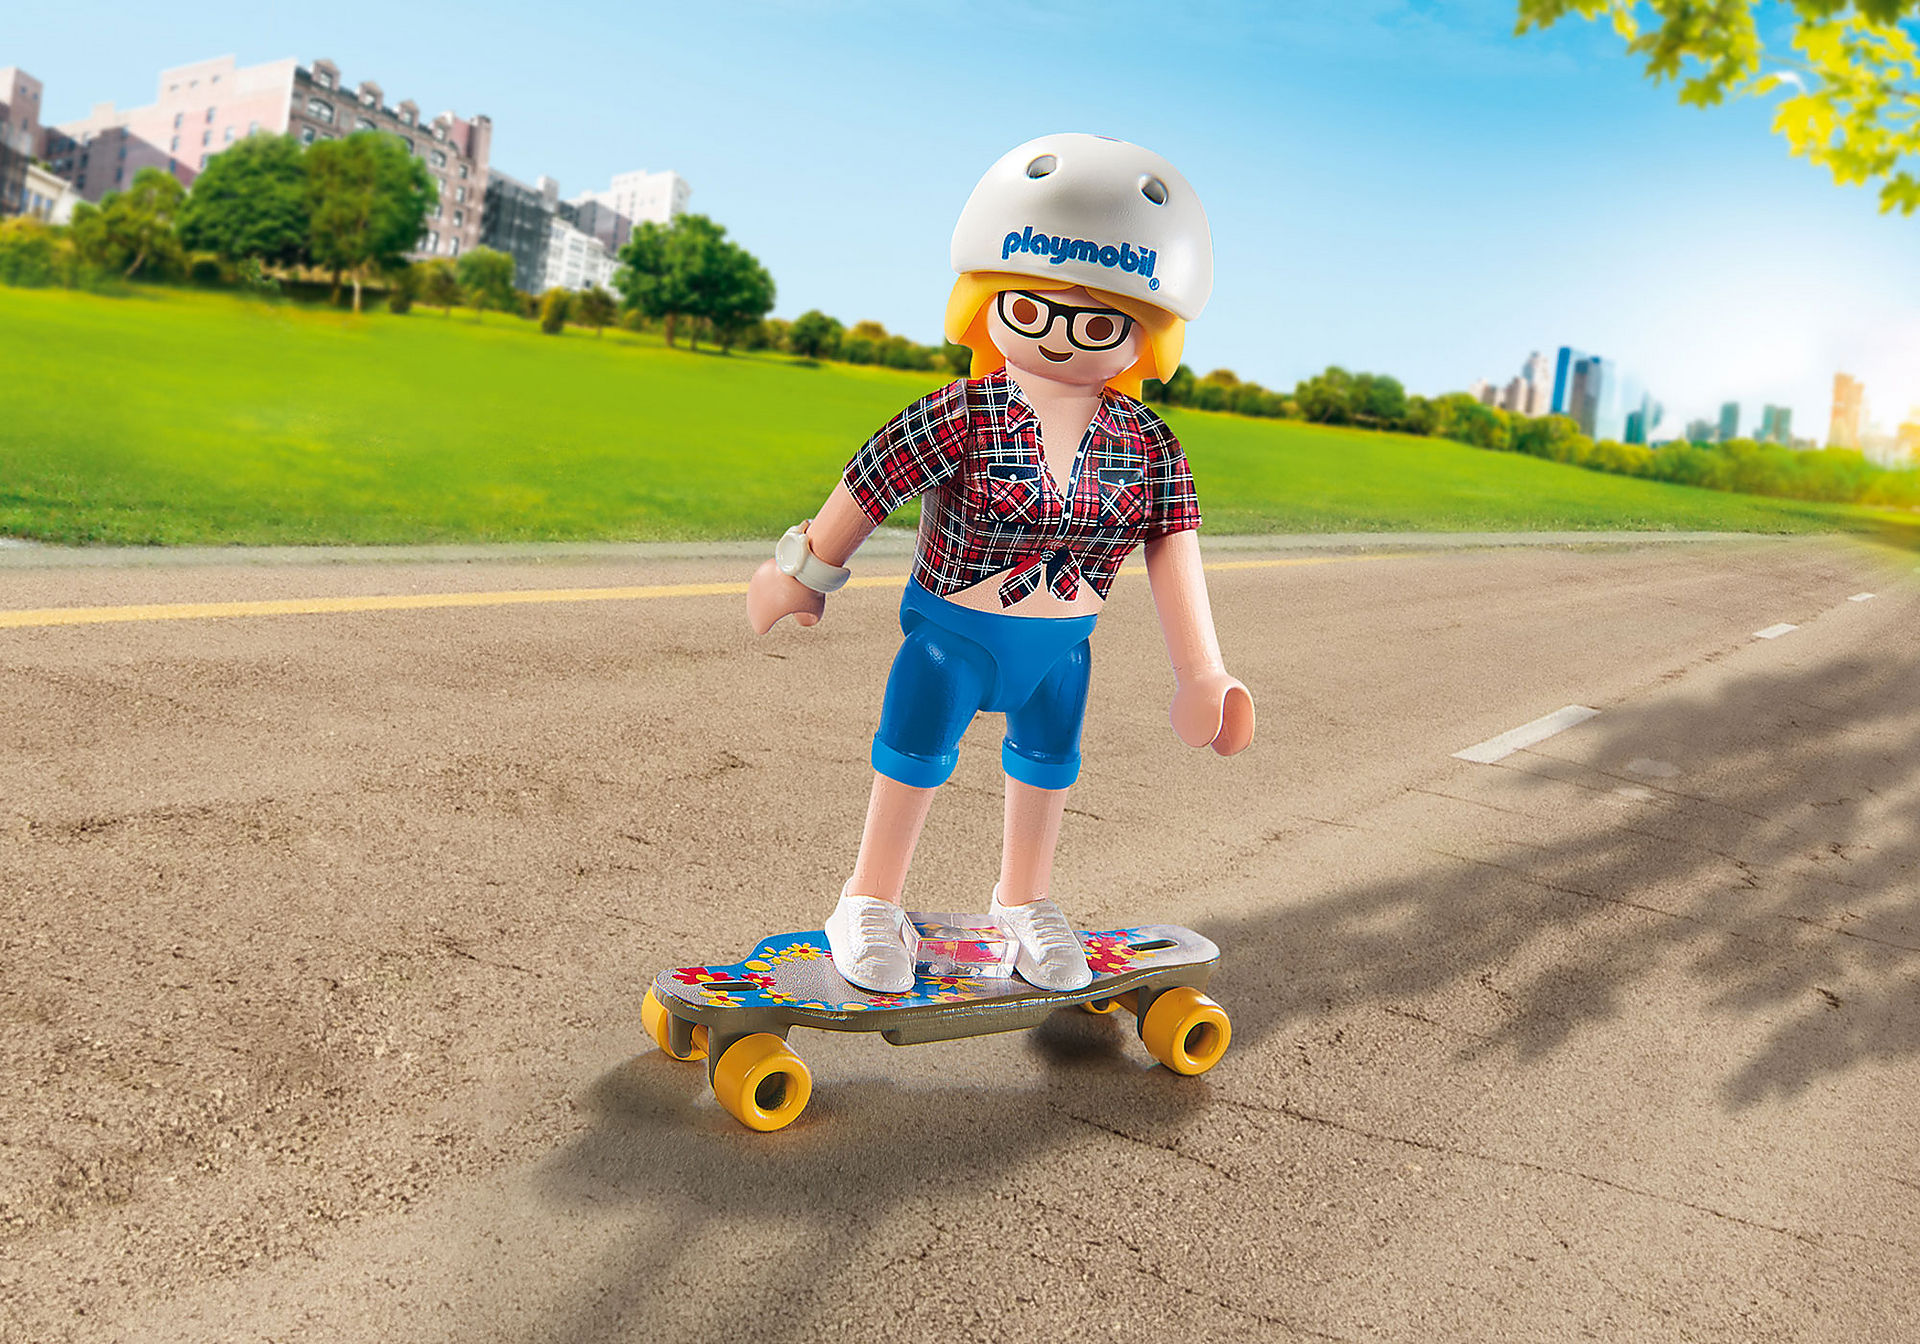 http://media.playmobil.com/i/playmobil/9338_product_detail/Skateboardåkare